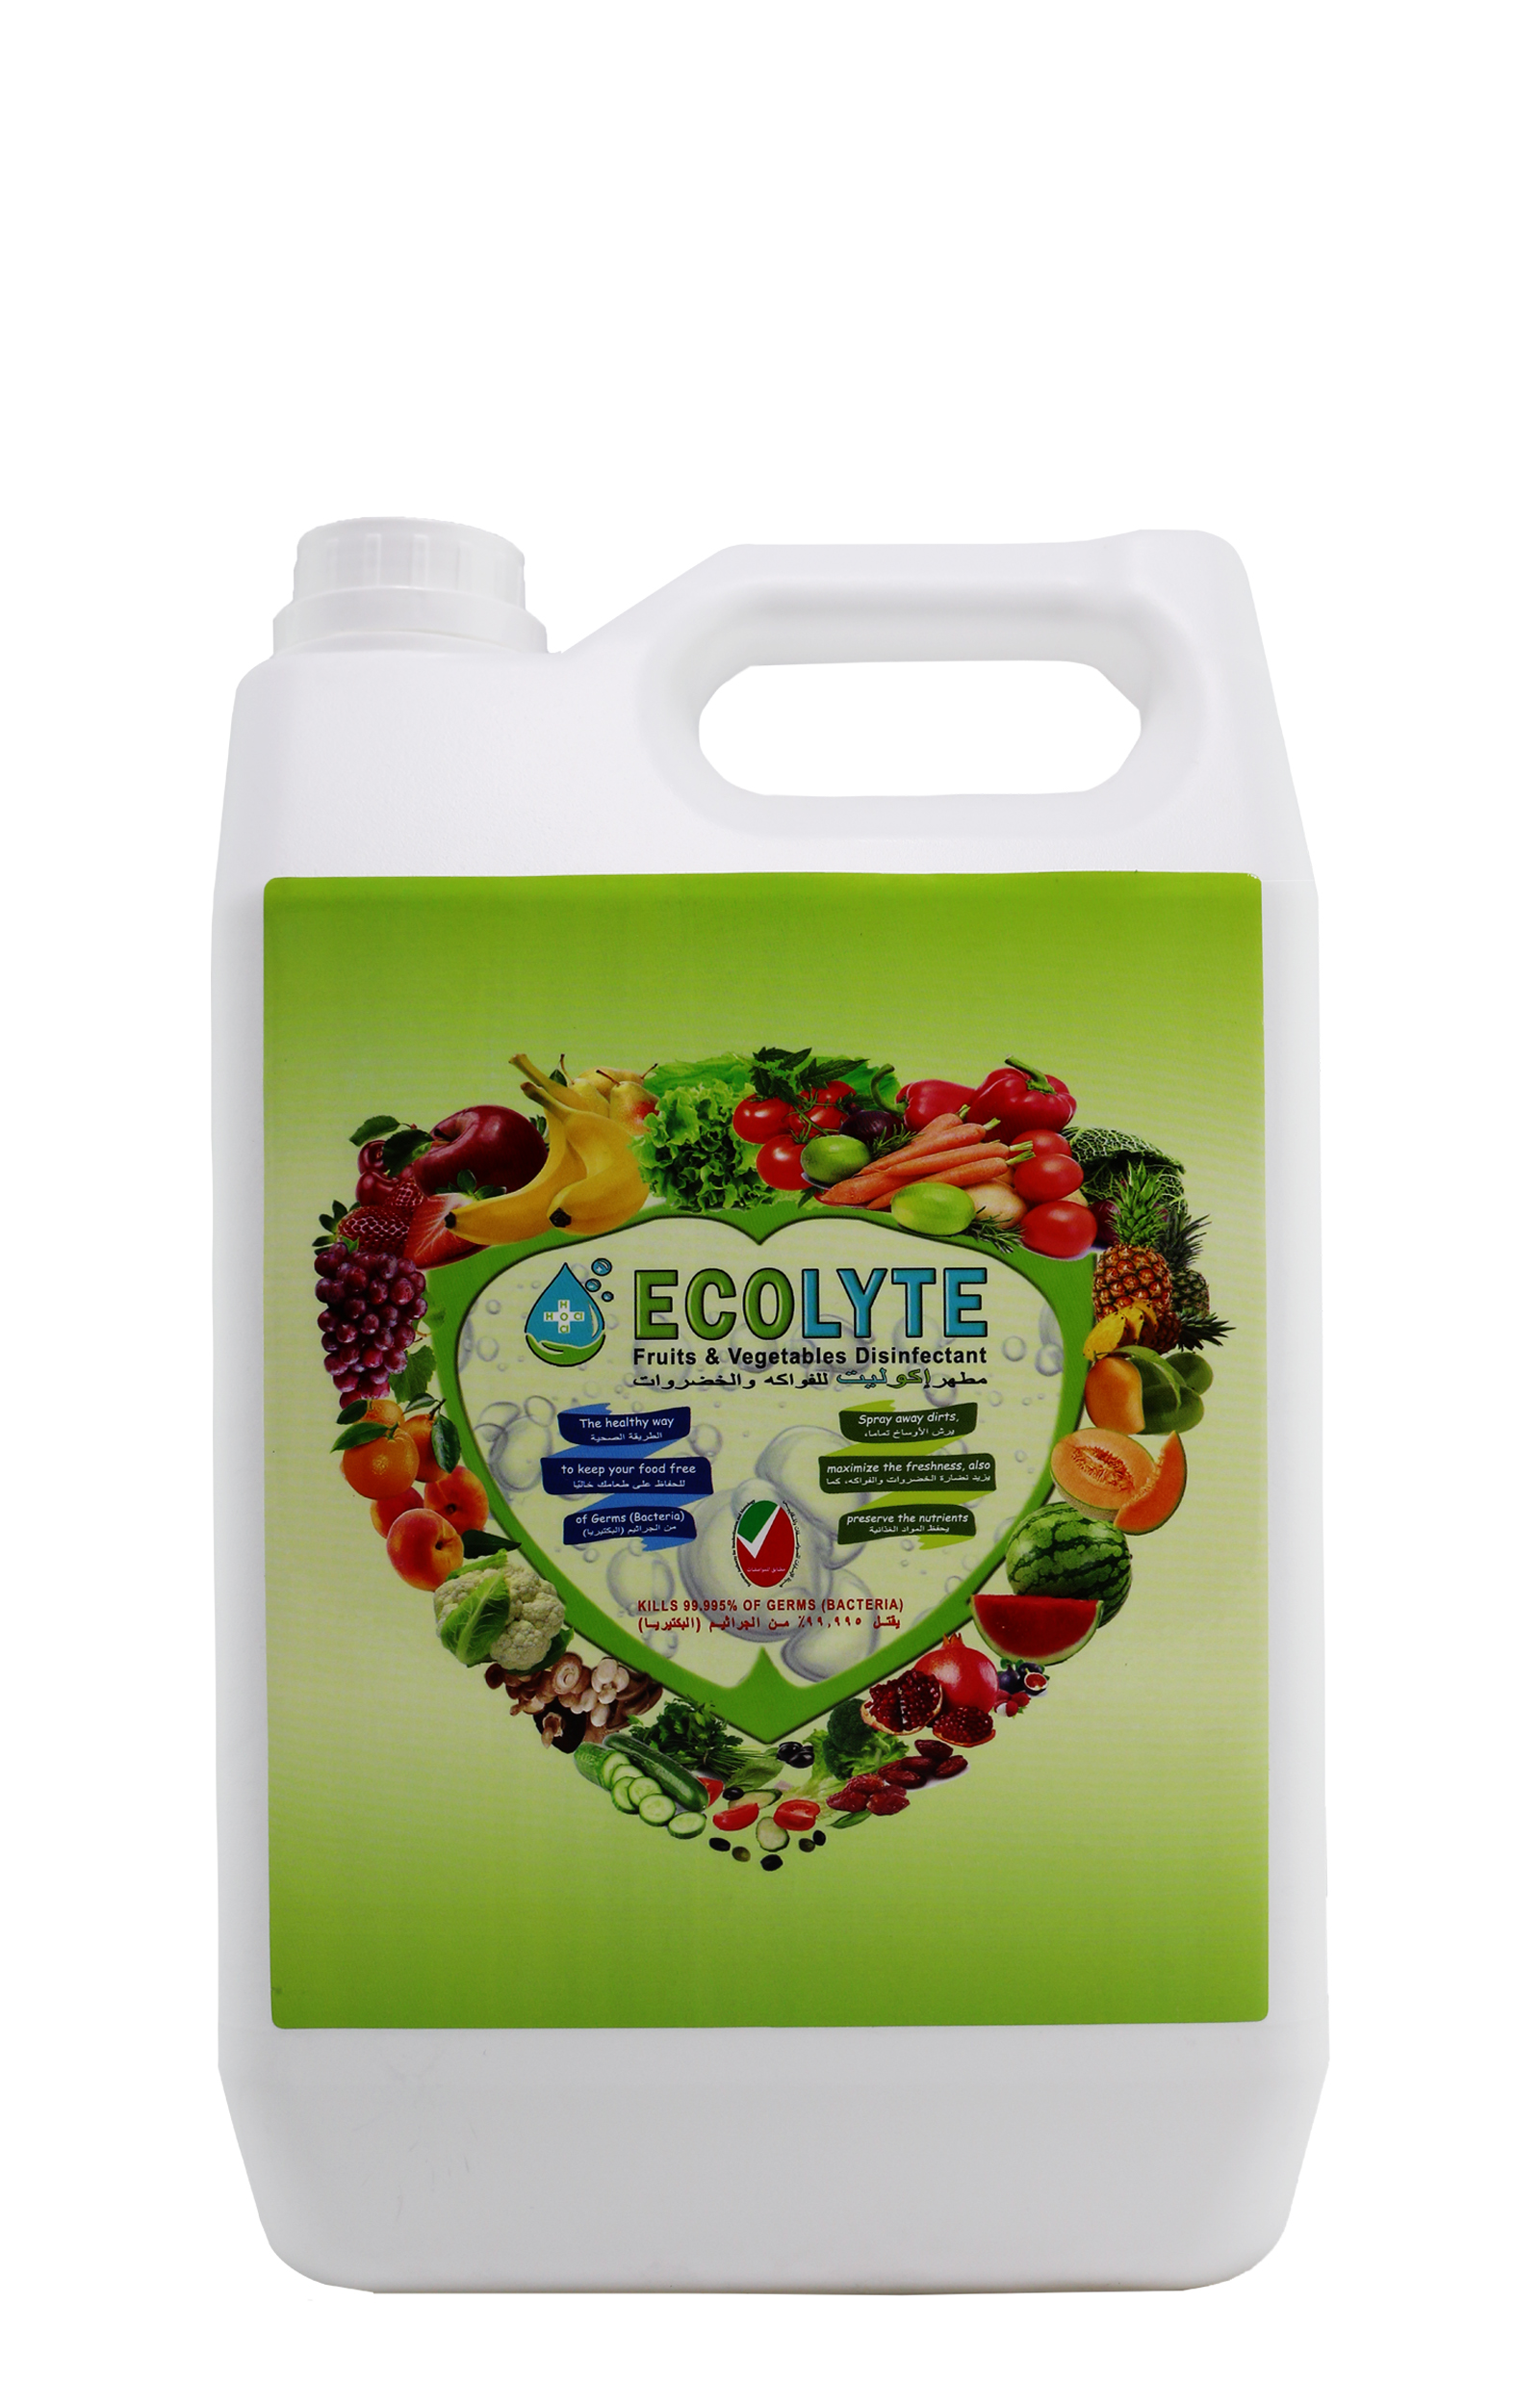 ECOLYTE FRUITS AND VEGETABLES DISINFECTANT 100% NATURAL - 5 LITRE